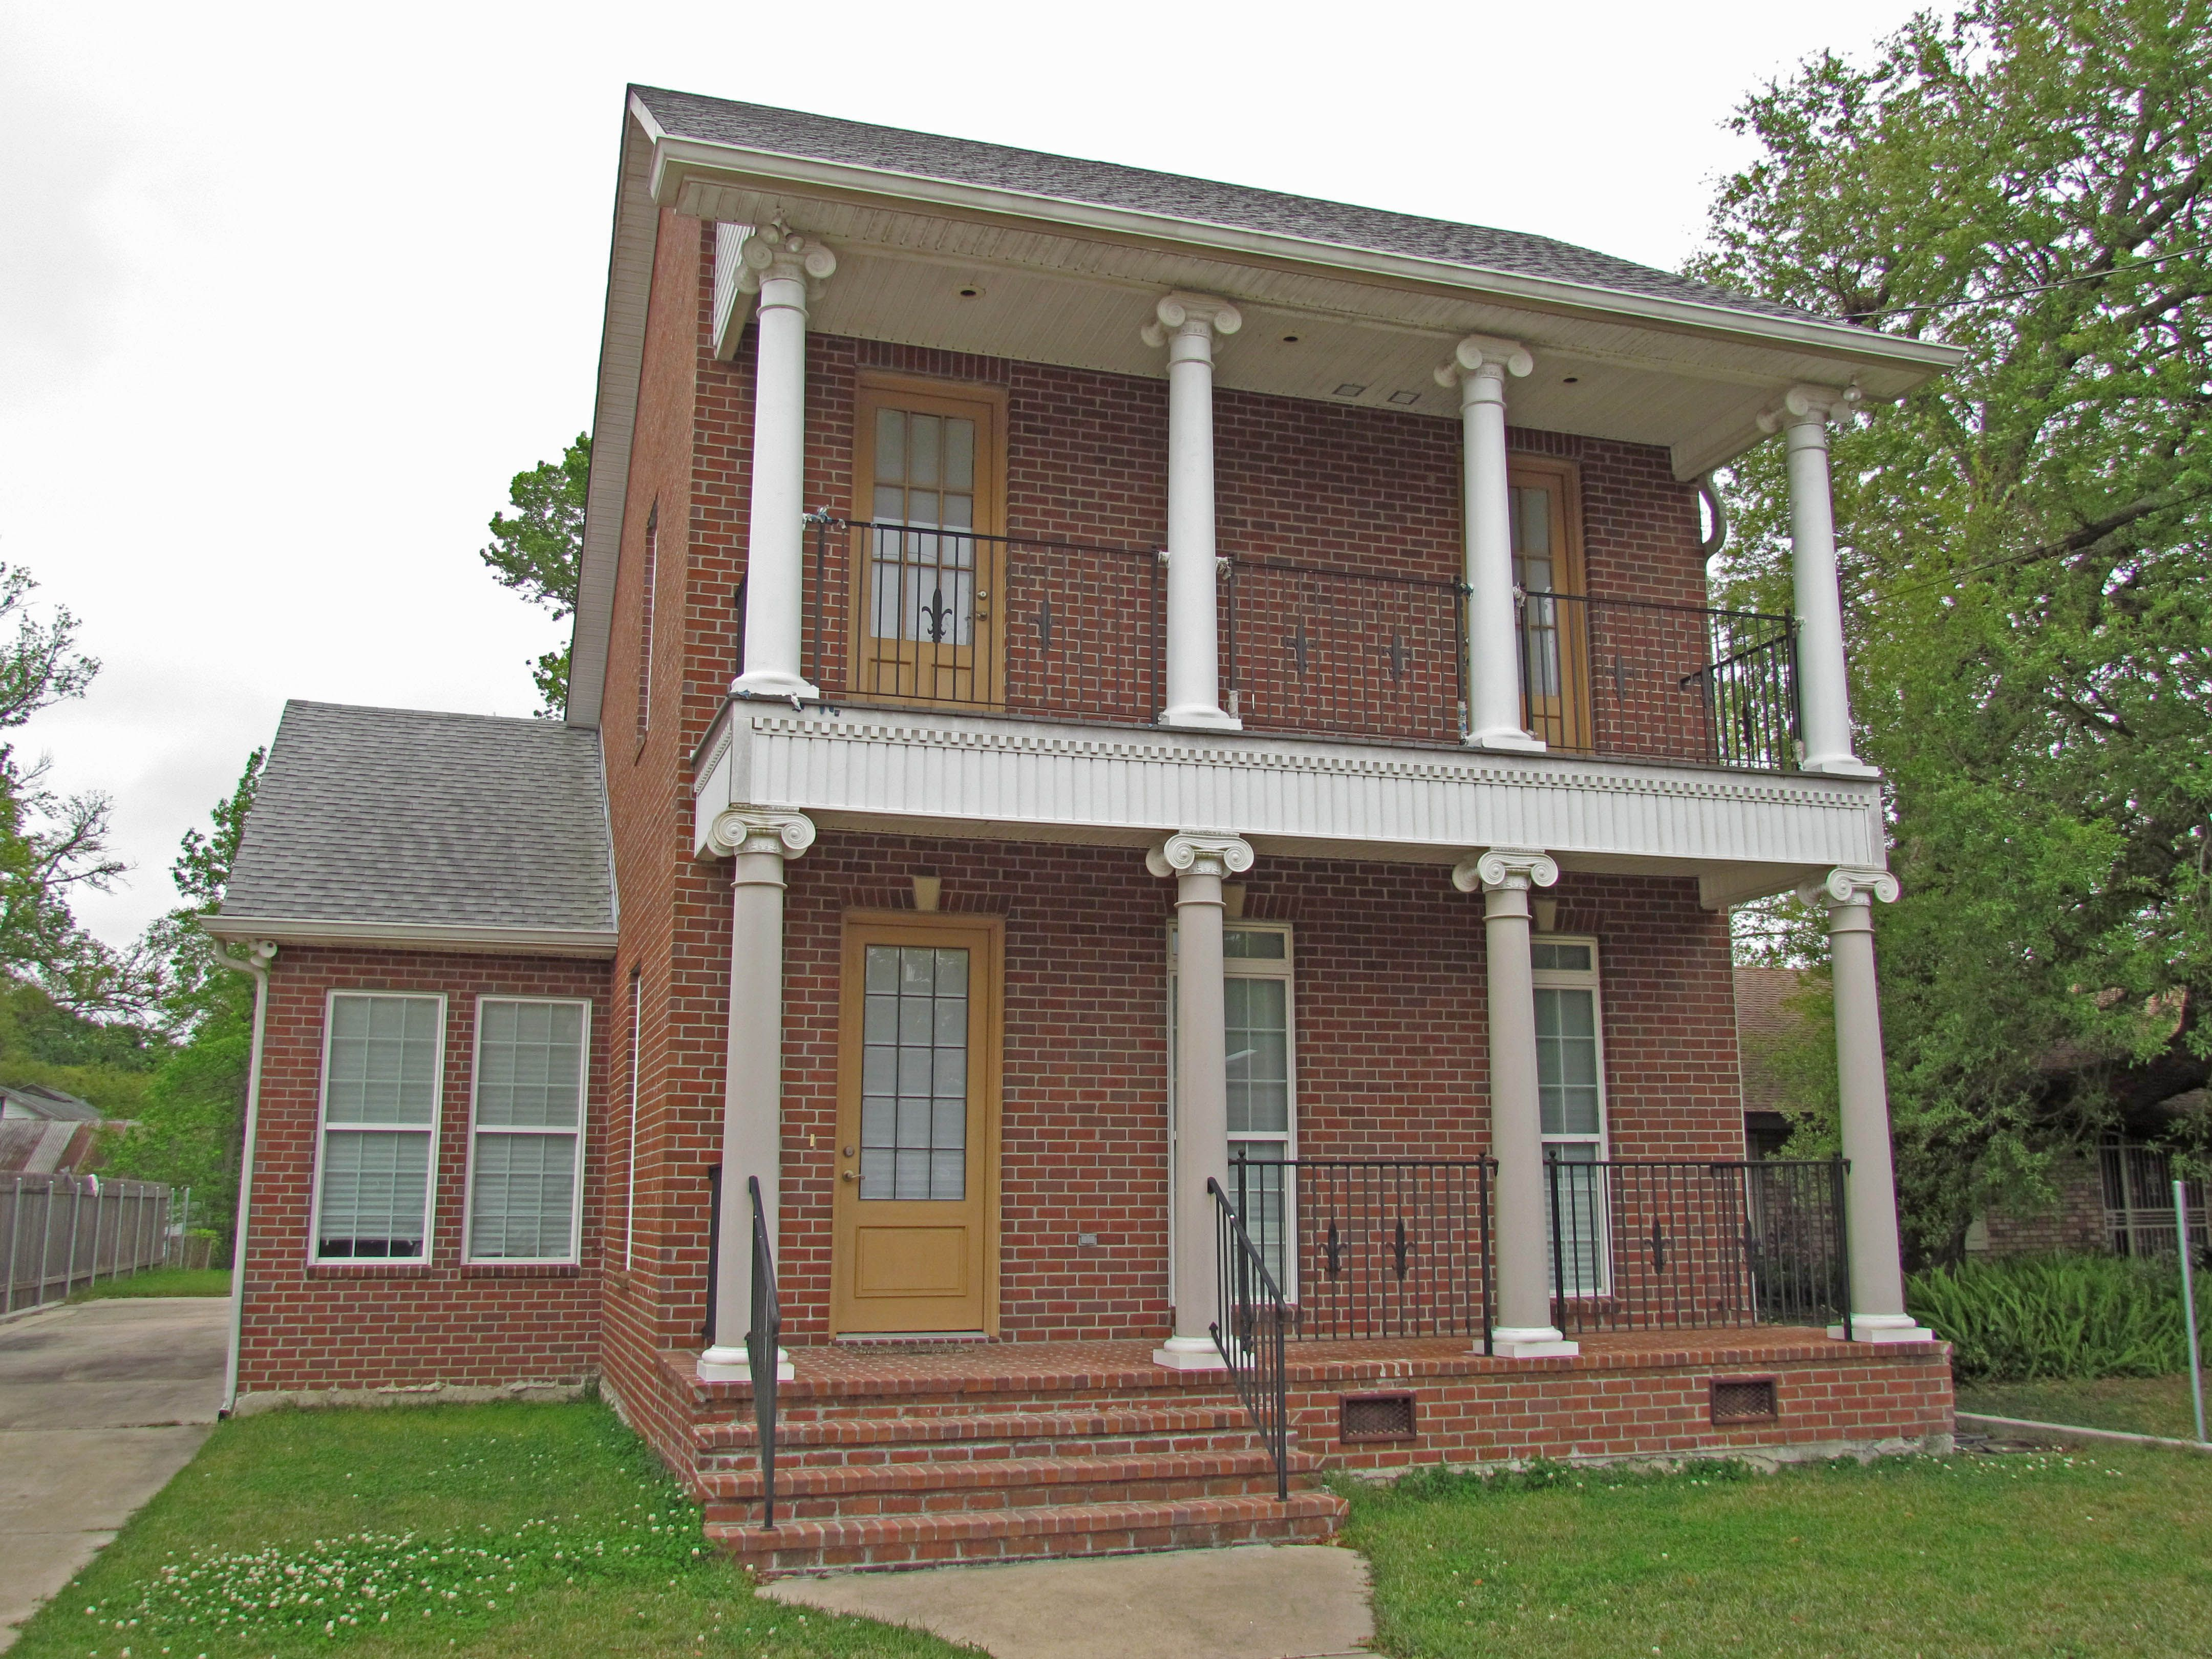 609 Florida St. | Commercial real estate, Local real ...